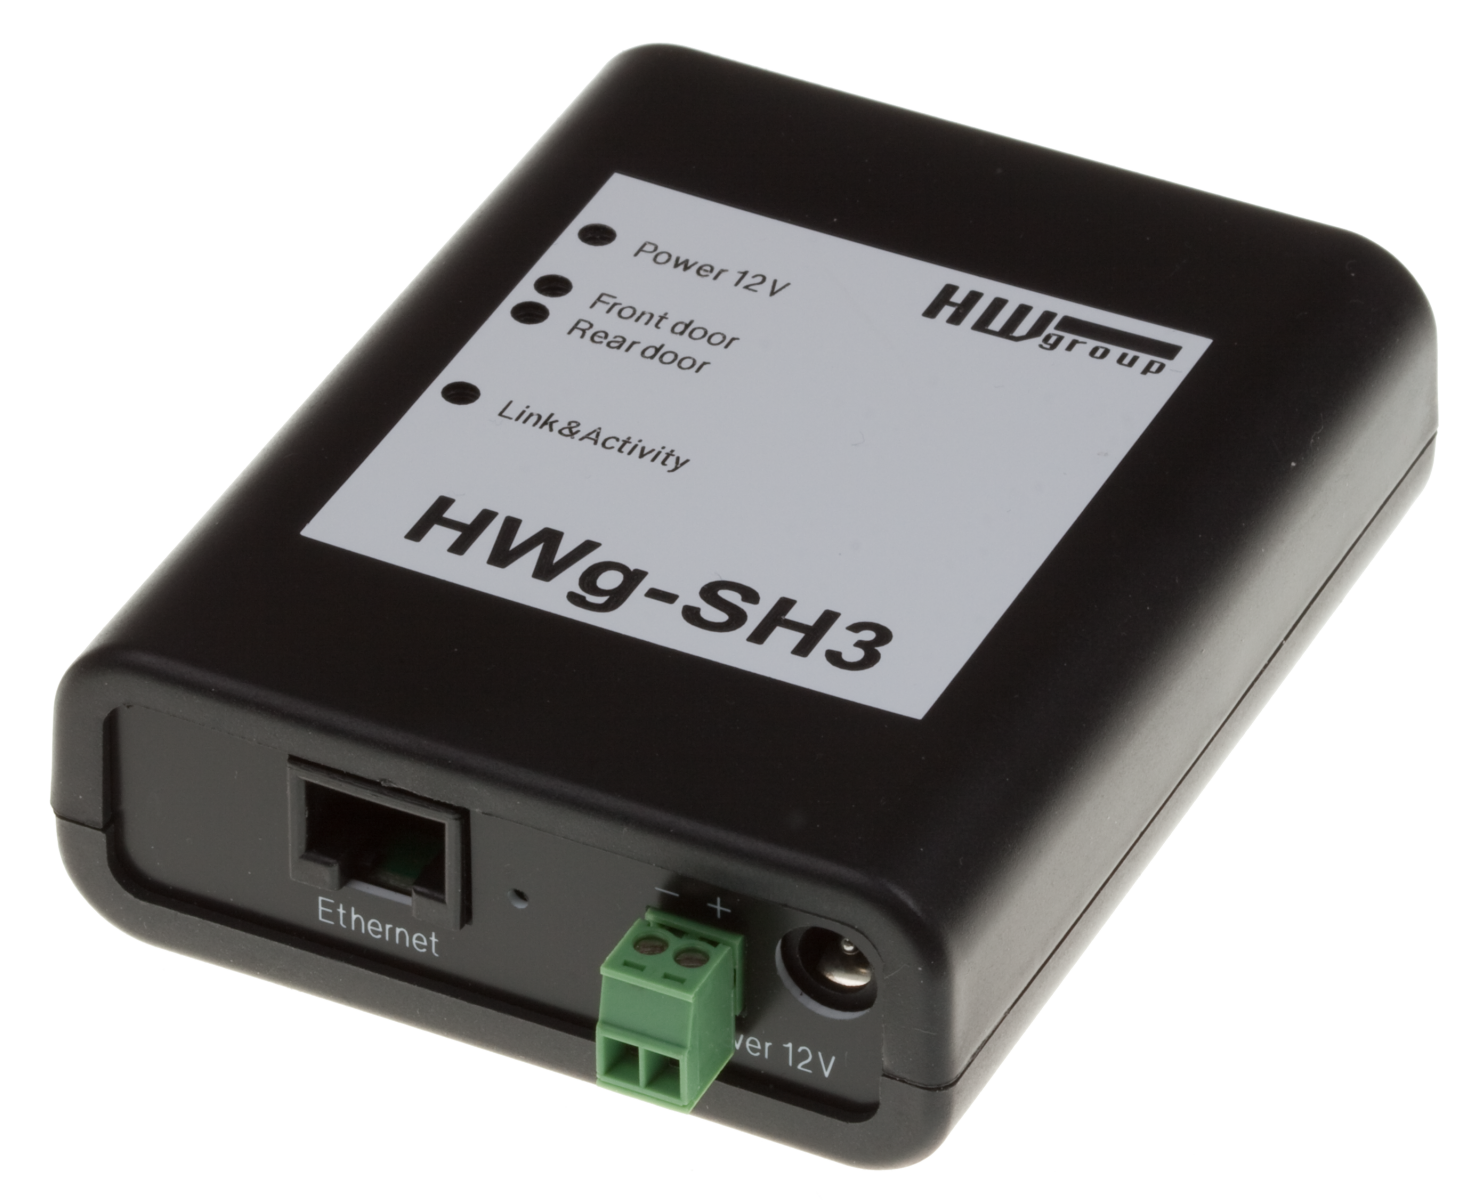 Hwg Sh3 Ip Based Rack Access Control System With Rfid